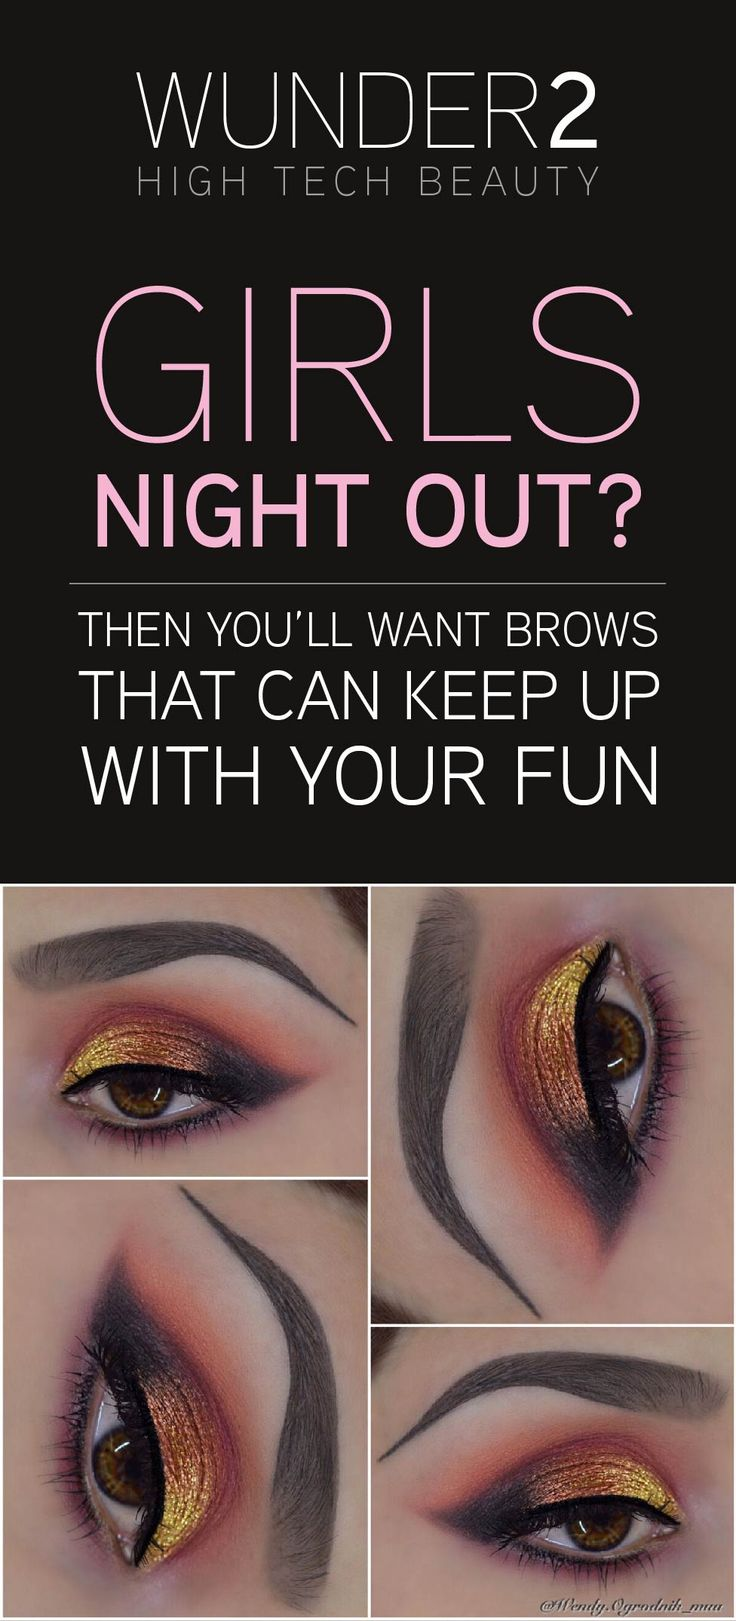 Eye are the first part of another person we look at - therefore you will want to use a product that will frame them perfectly. That product is WunderBrow! Choose from 5 shades - Blonde, Brunette, Auburn, Black/Brown or Jet Black. Order today for $22 to get FREE shipping & a 30 day money back guarantee. Simply click on the 'visit' button above. The order form takes less than 2 minutes to complete. Once done you will receive an order confirmation email. Welcome to the future of beautiful…